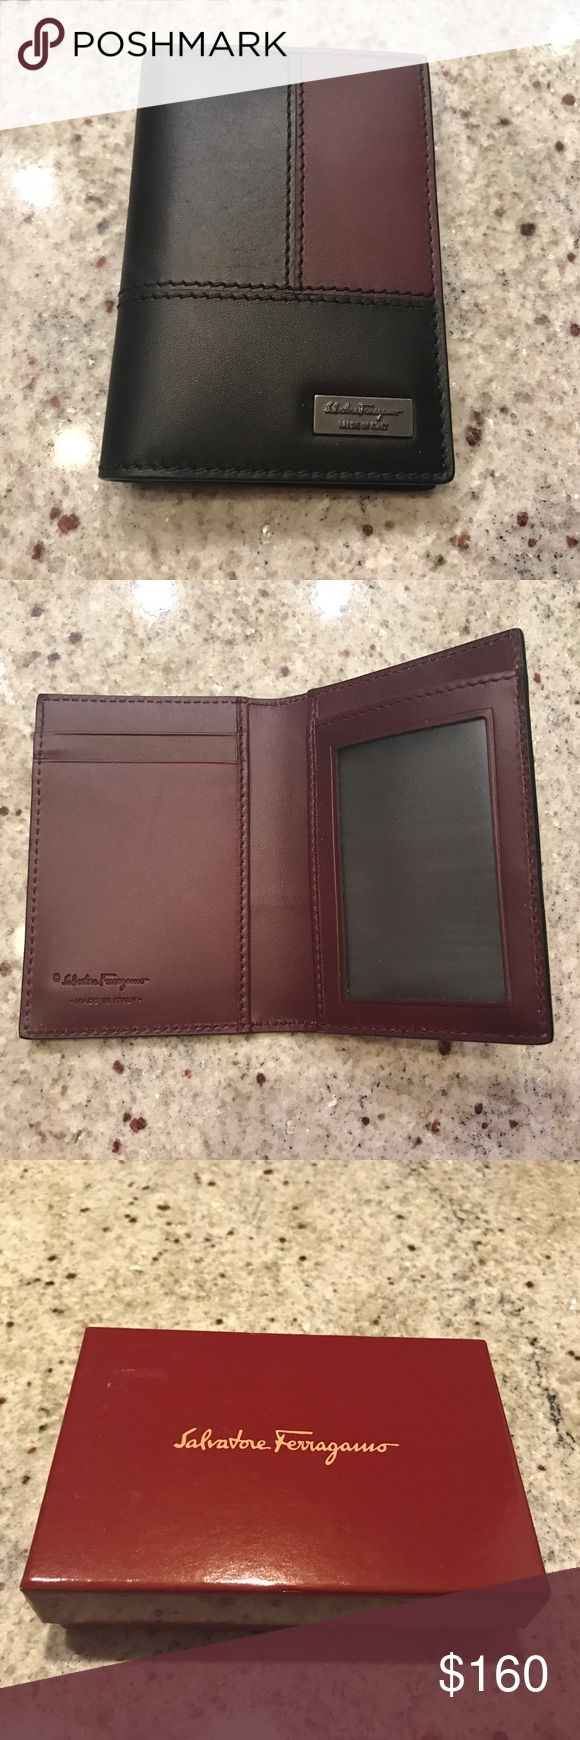 Ferragamo Tris Color Block Card Case Color block leather card case with gunmetal plaque logo. Two vertical card slots on left interior and transparent card slot on right side. Brand new in original box. Ferragamo Accessories Key & Card Holders